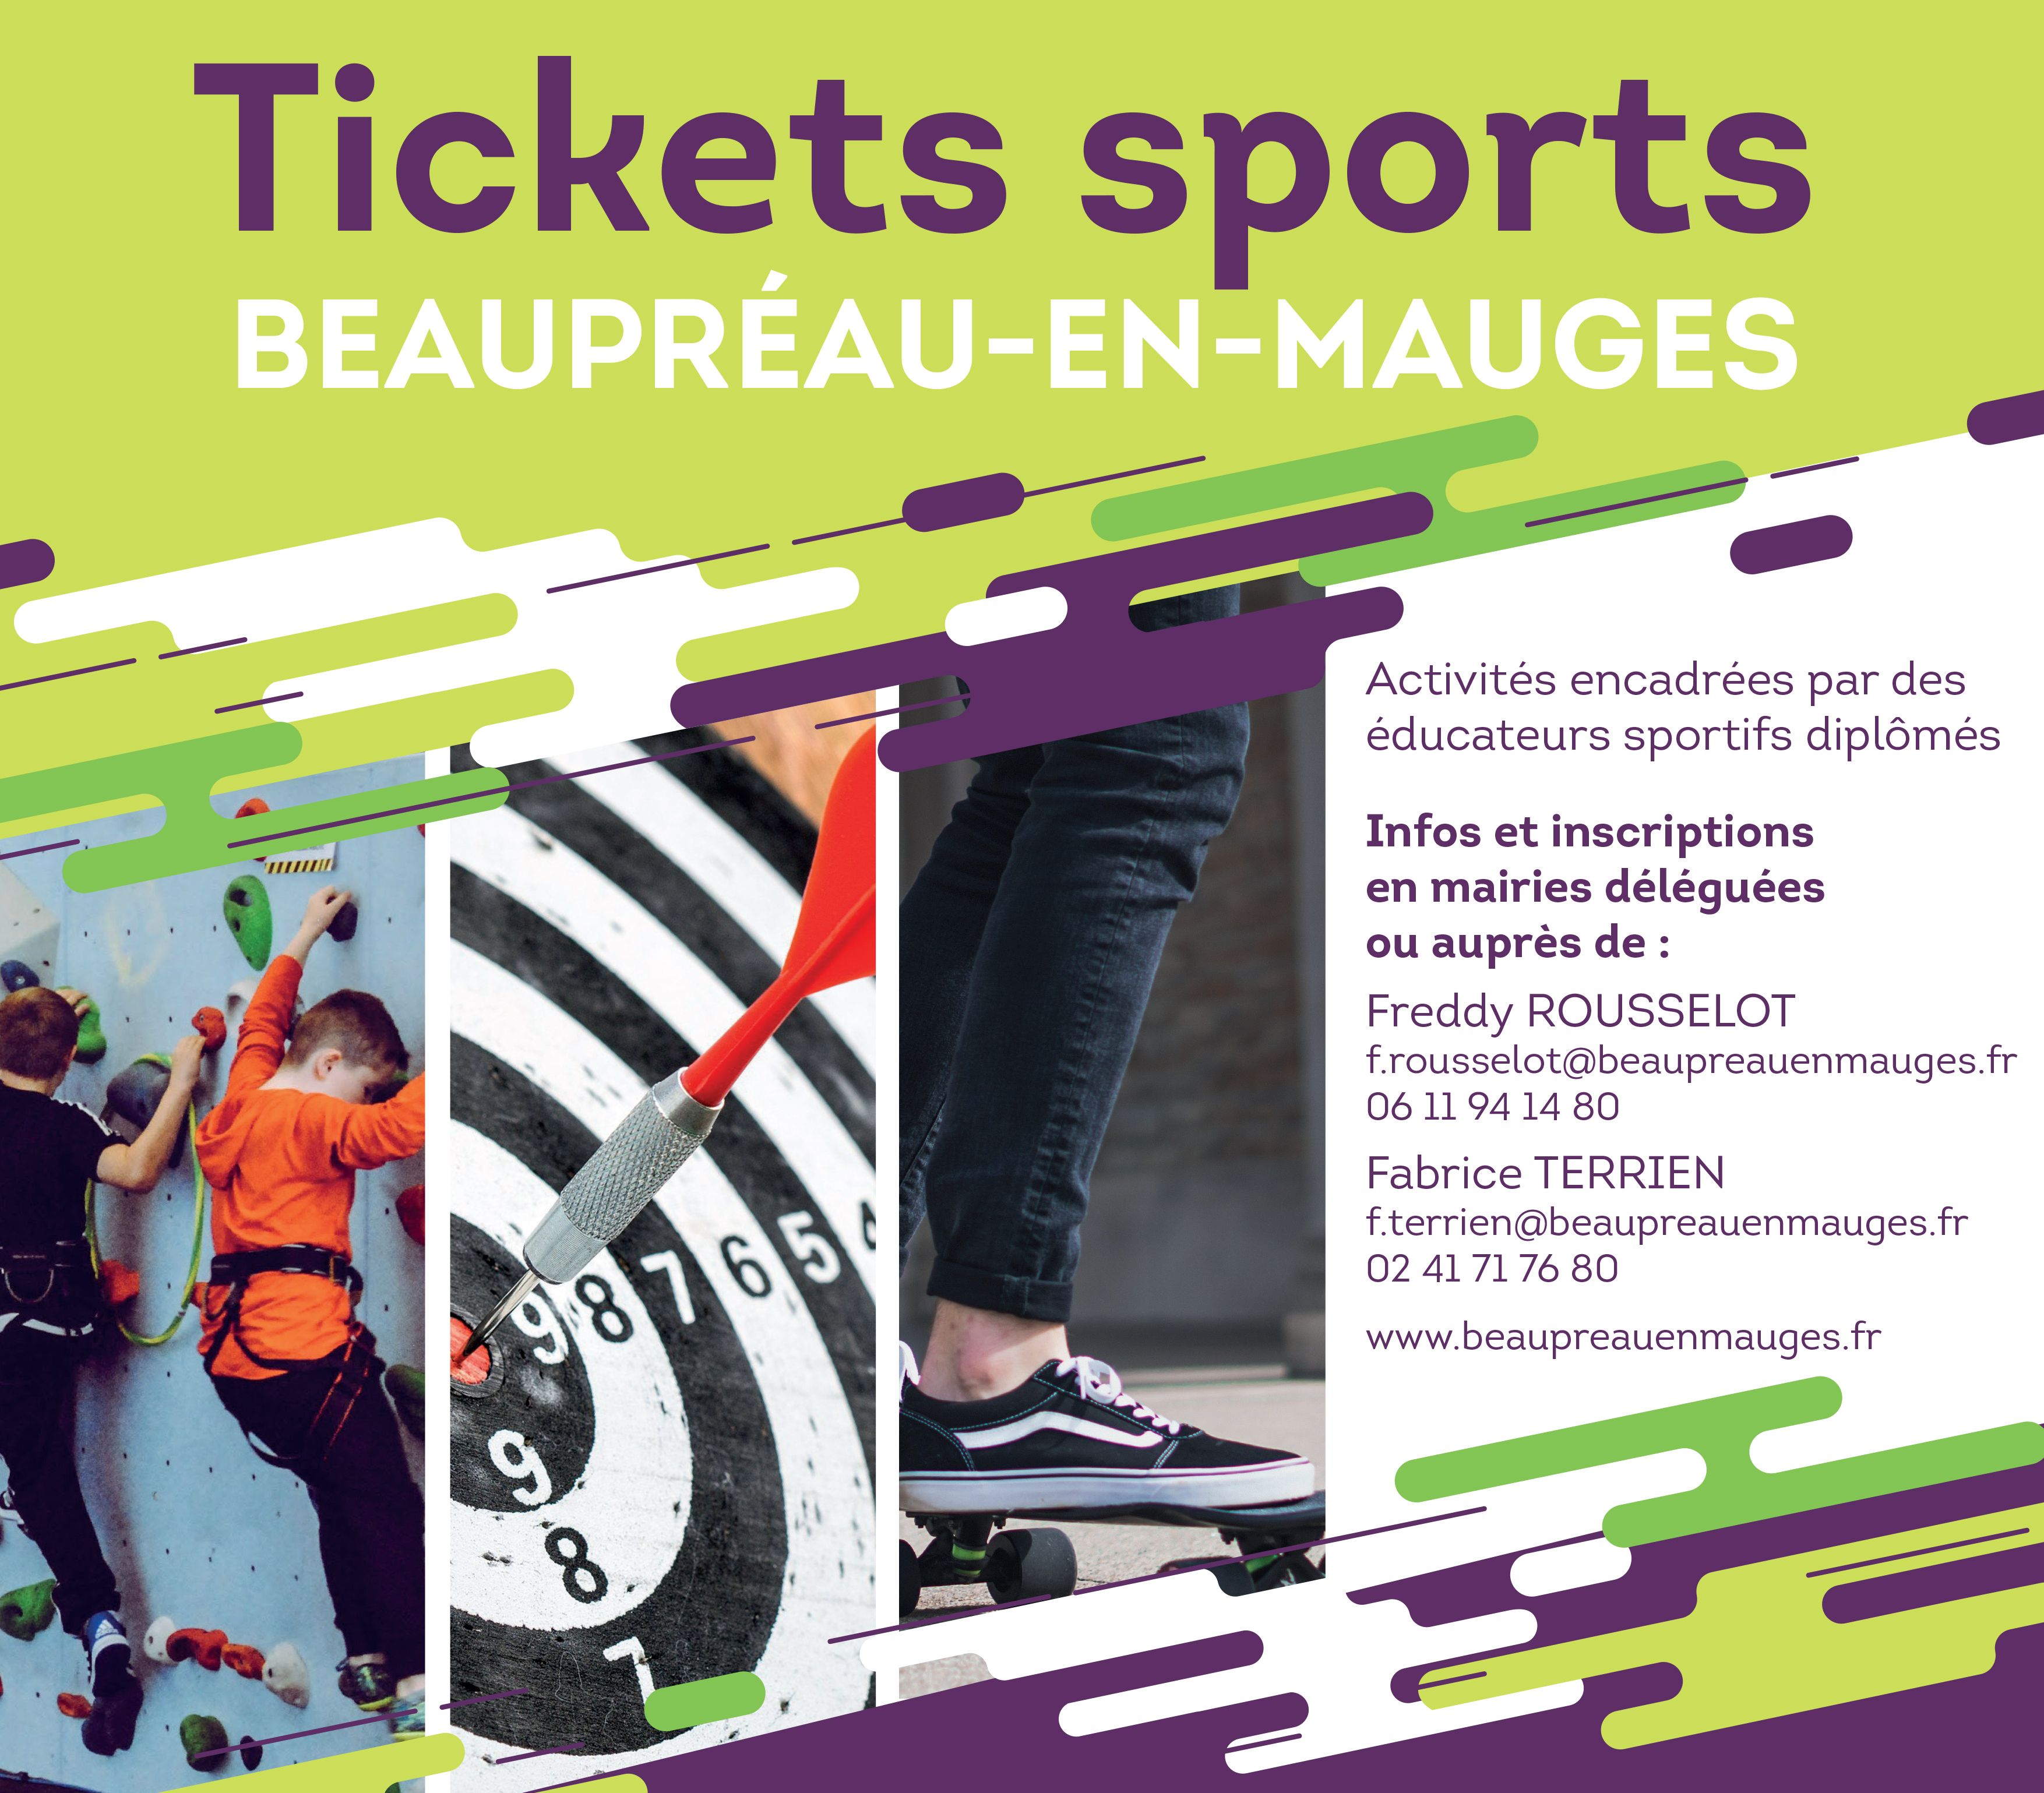 Tickets sports avril 2019